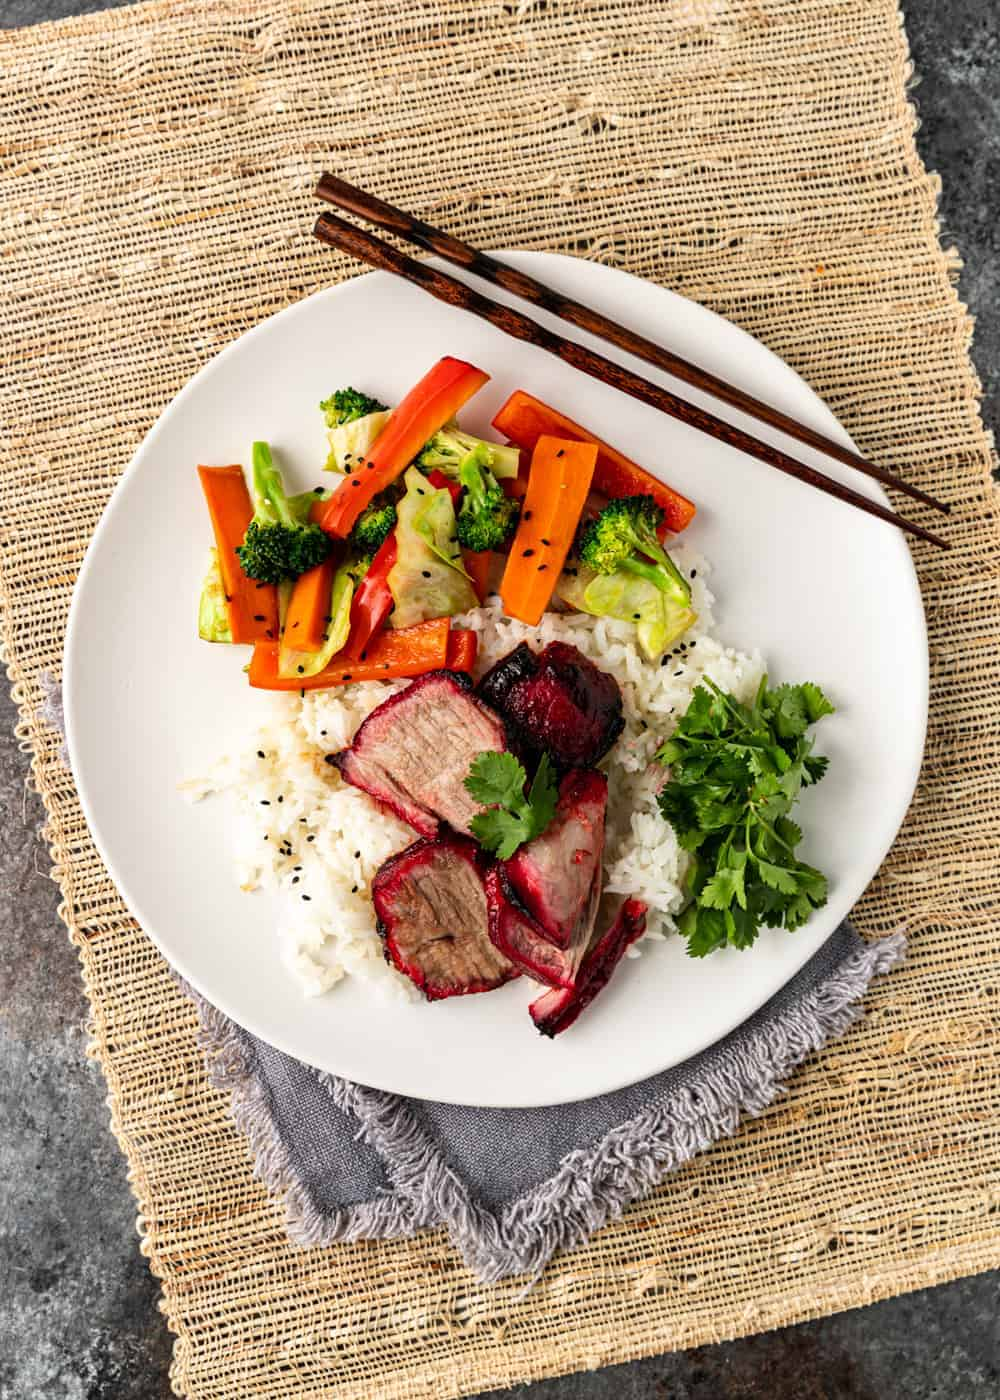 overhead image: plated Asian BBQ pork dinner with side of roasted carrots and broccoli